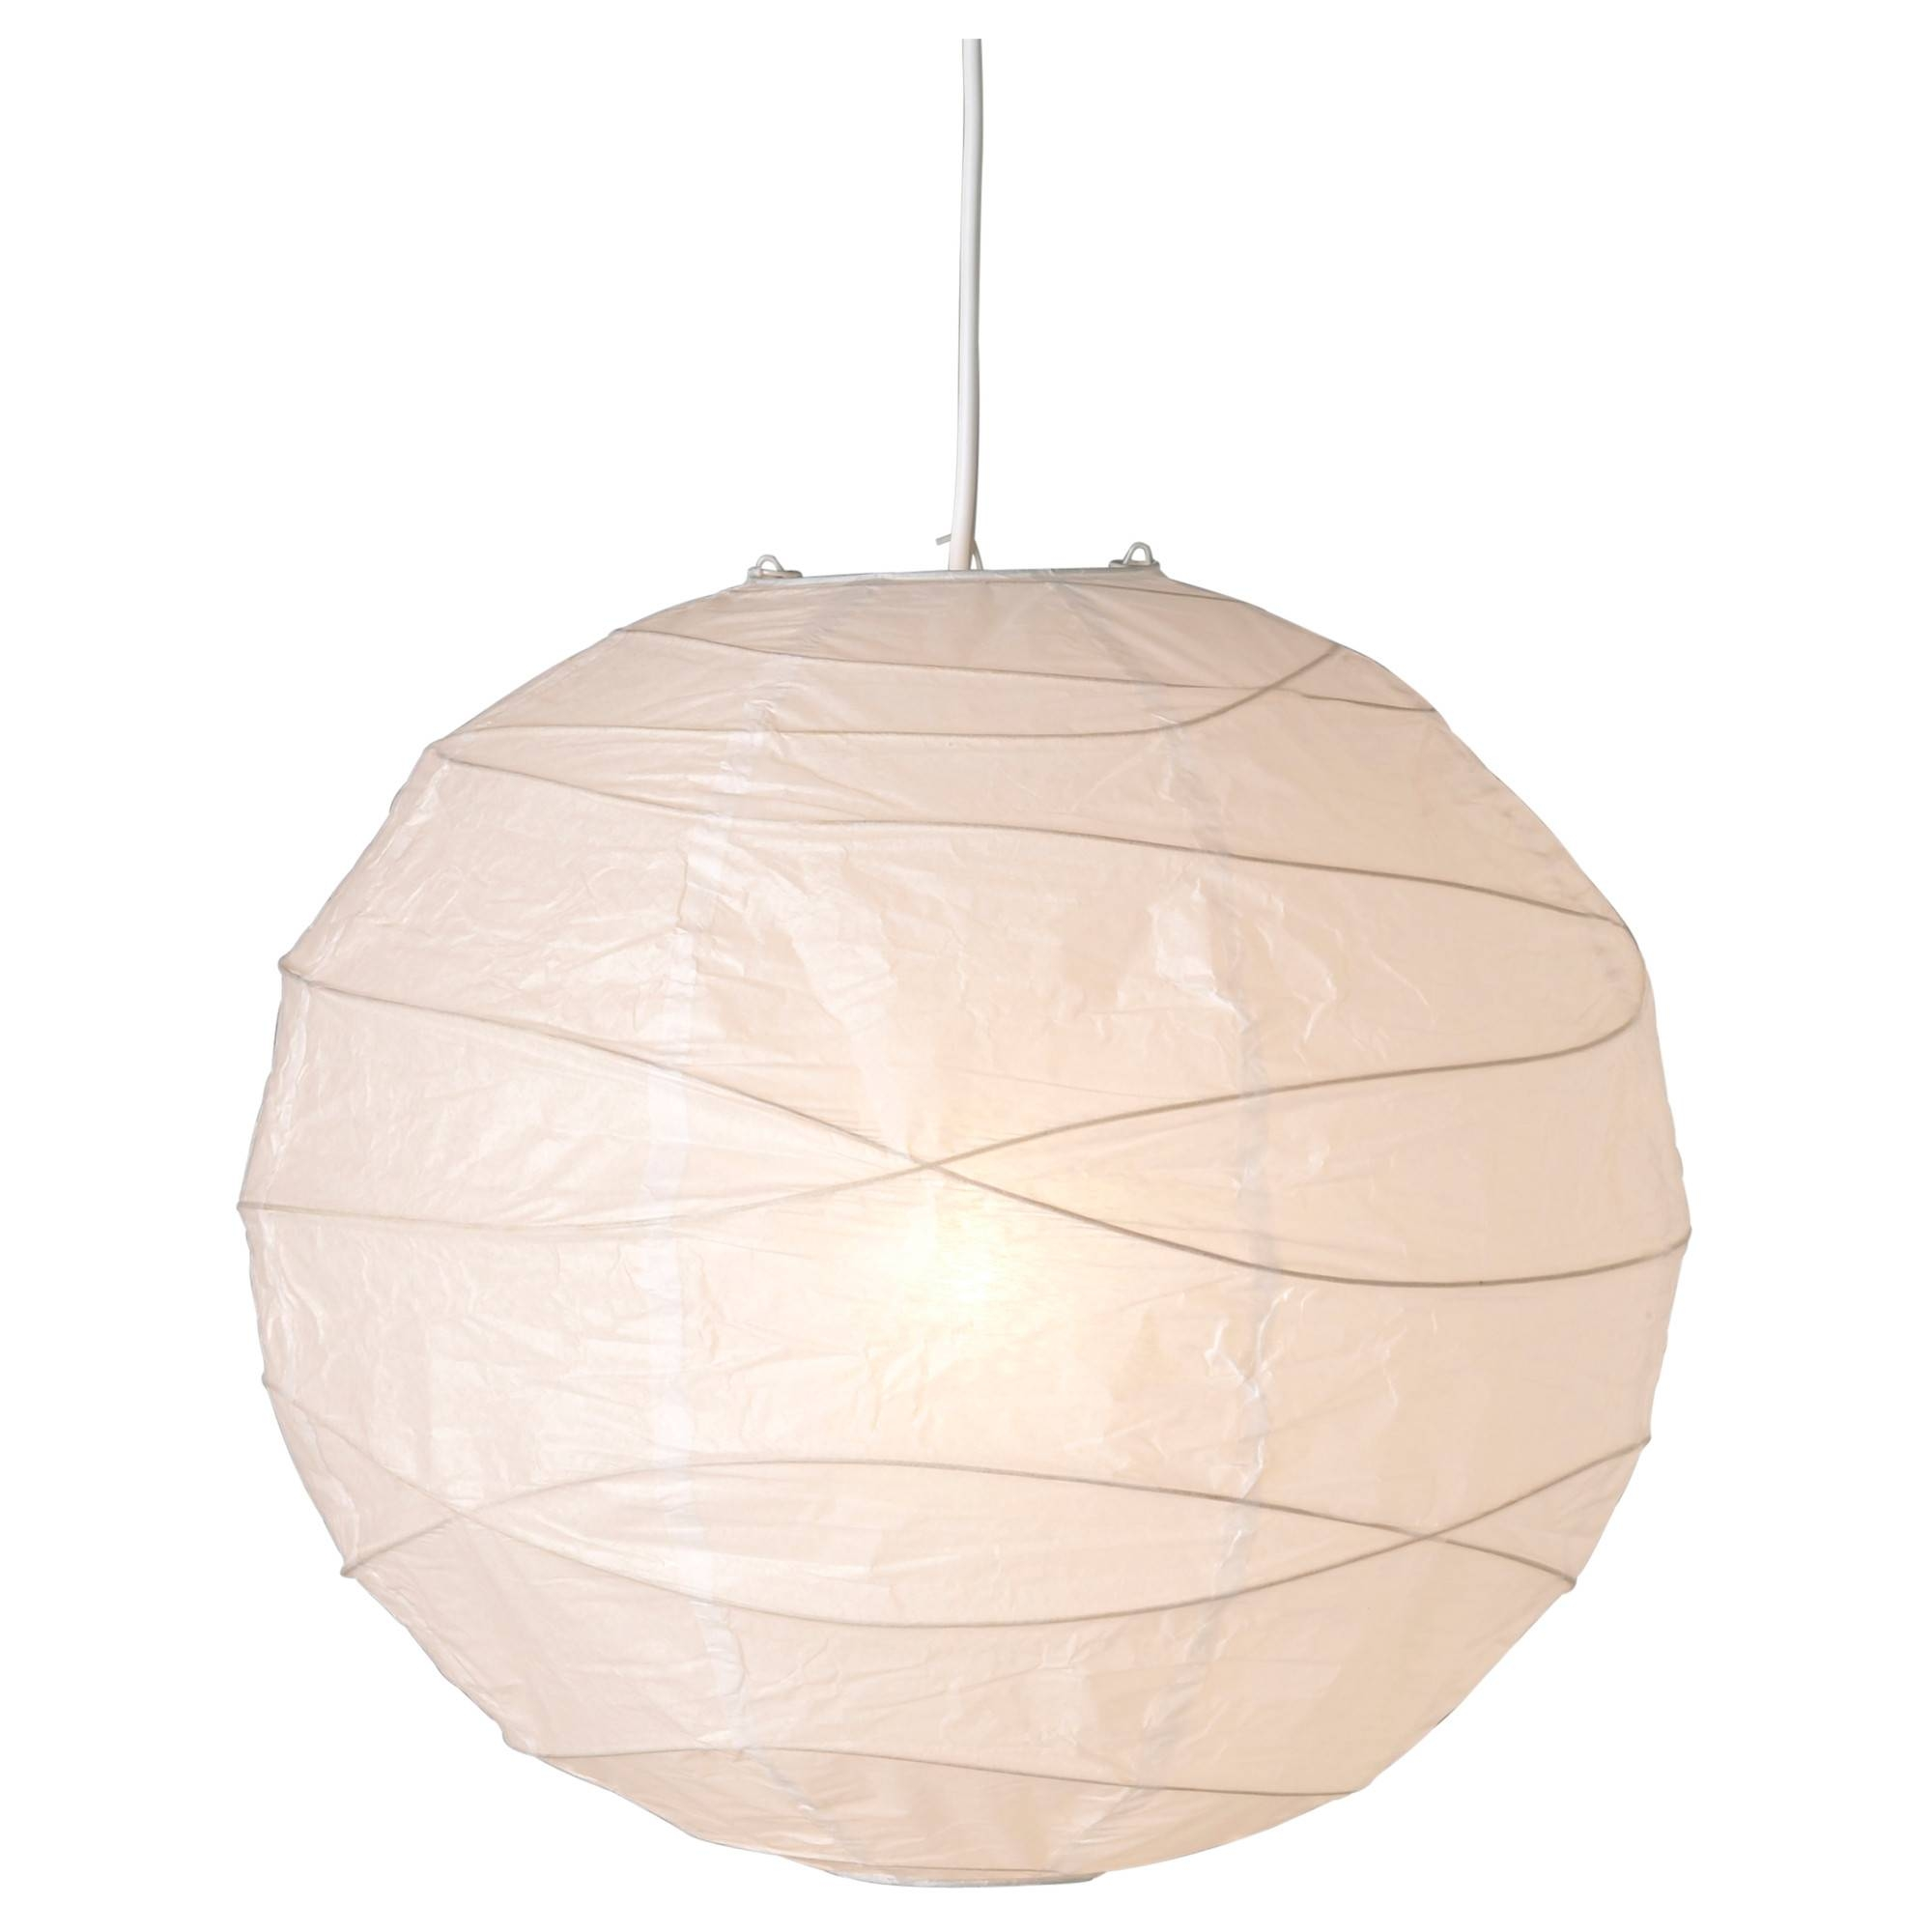 Regolit Pendant Lamp Shade - Ikea regarding Ikea Hanging Lights (Image 15 of 15)